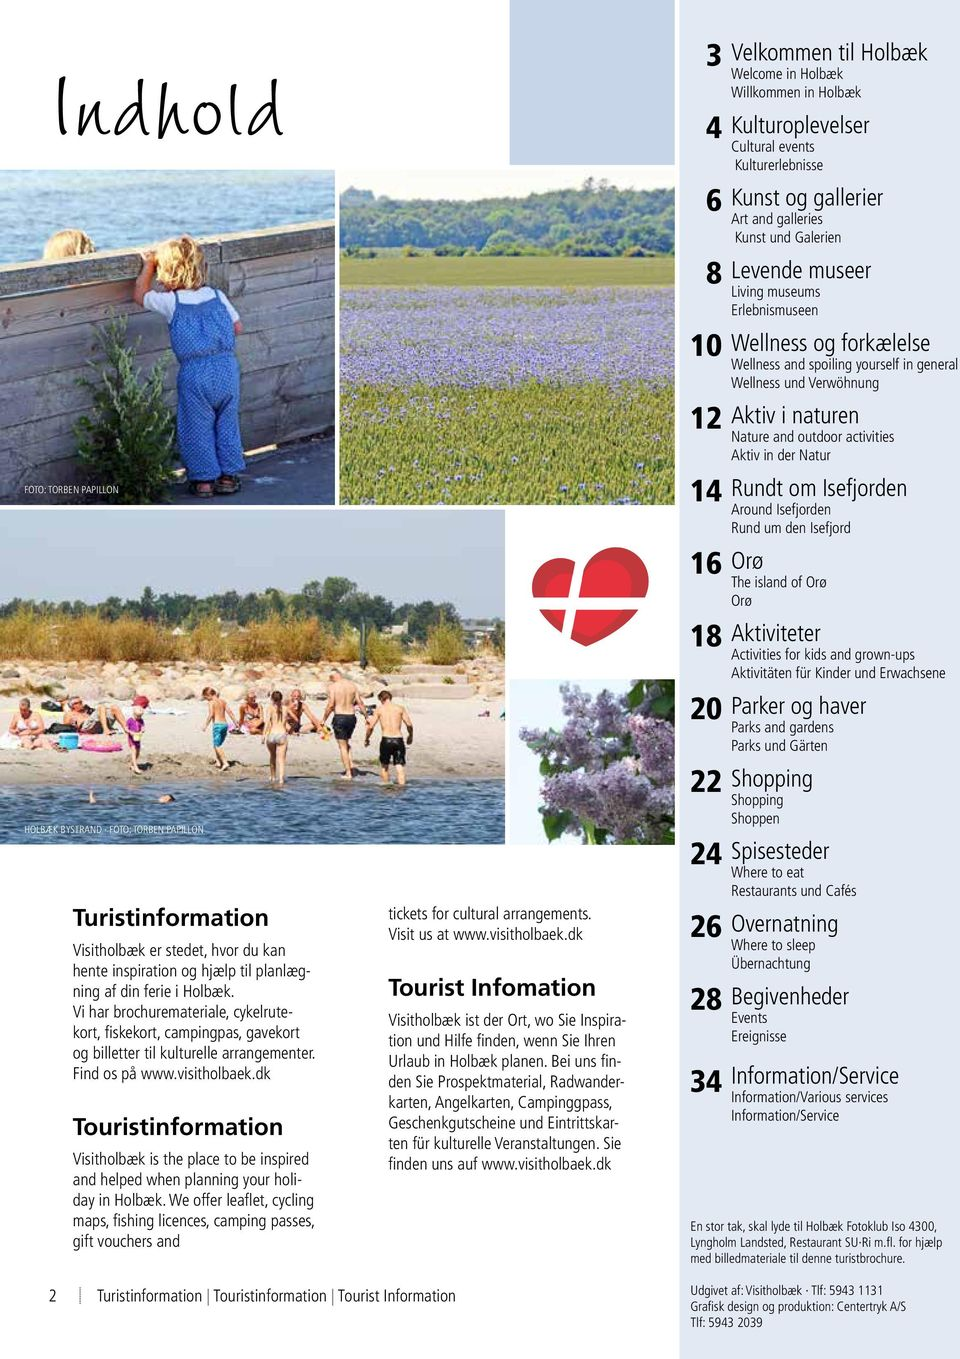 dk Touristinformation Visitholbæk is the place to be inspired and helped when planning your holiday in Holbæk.